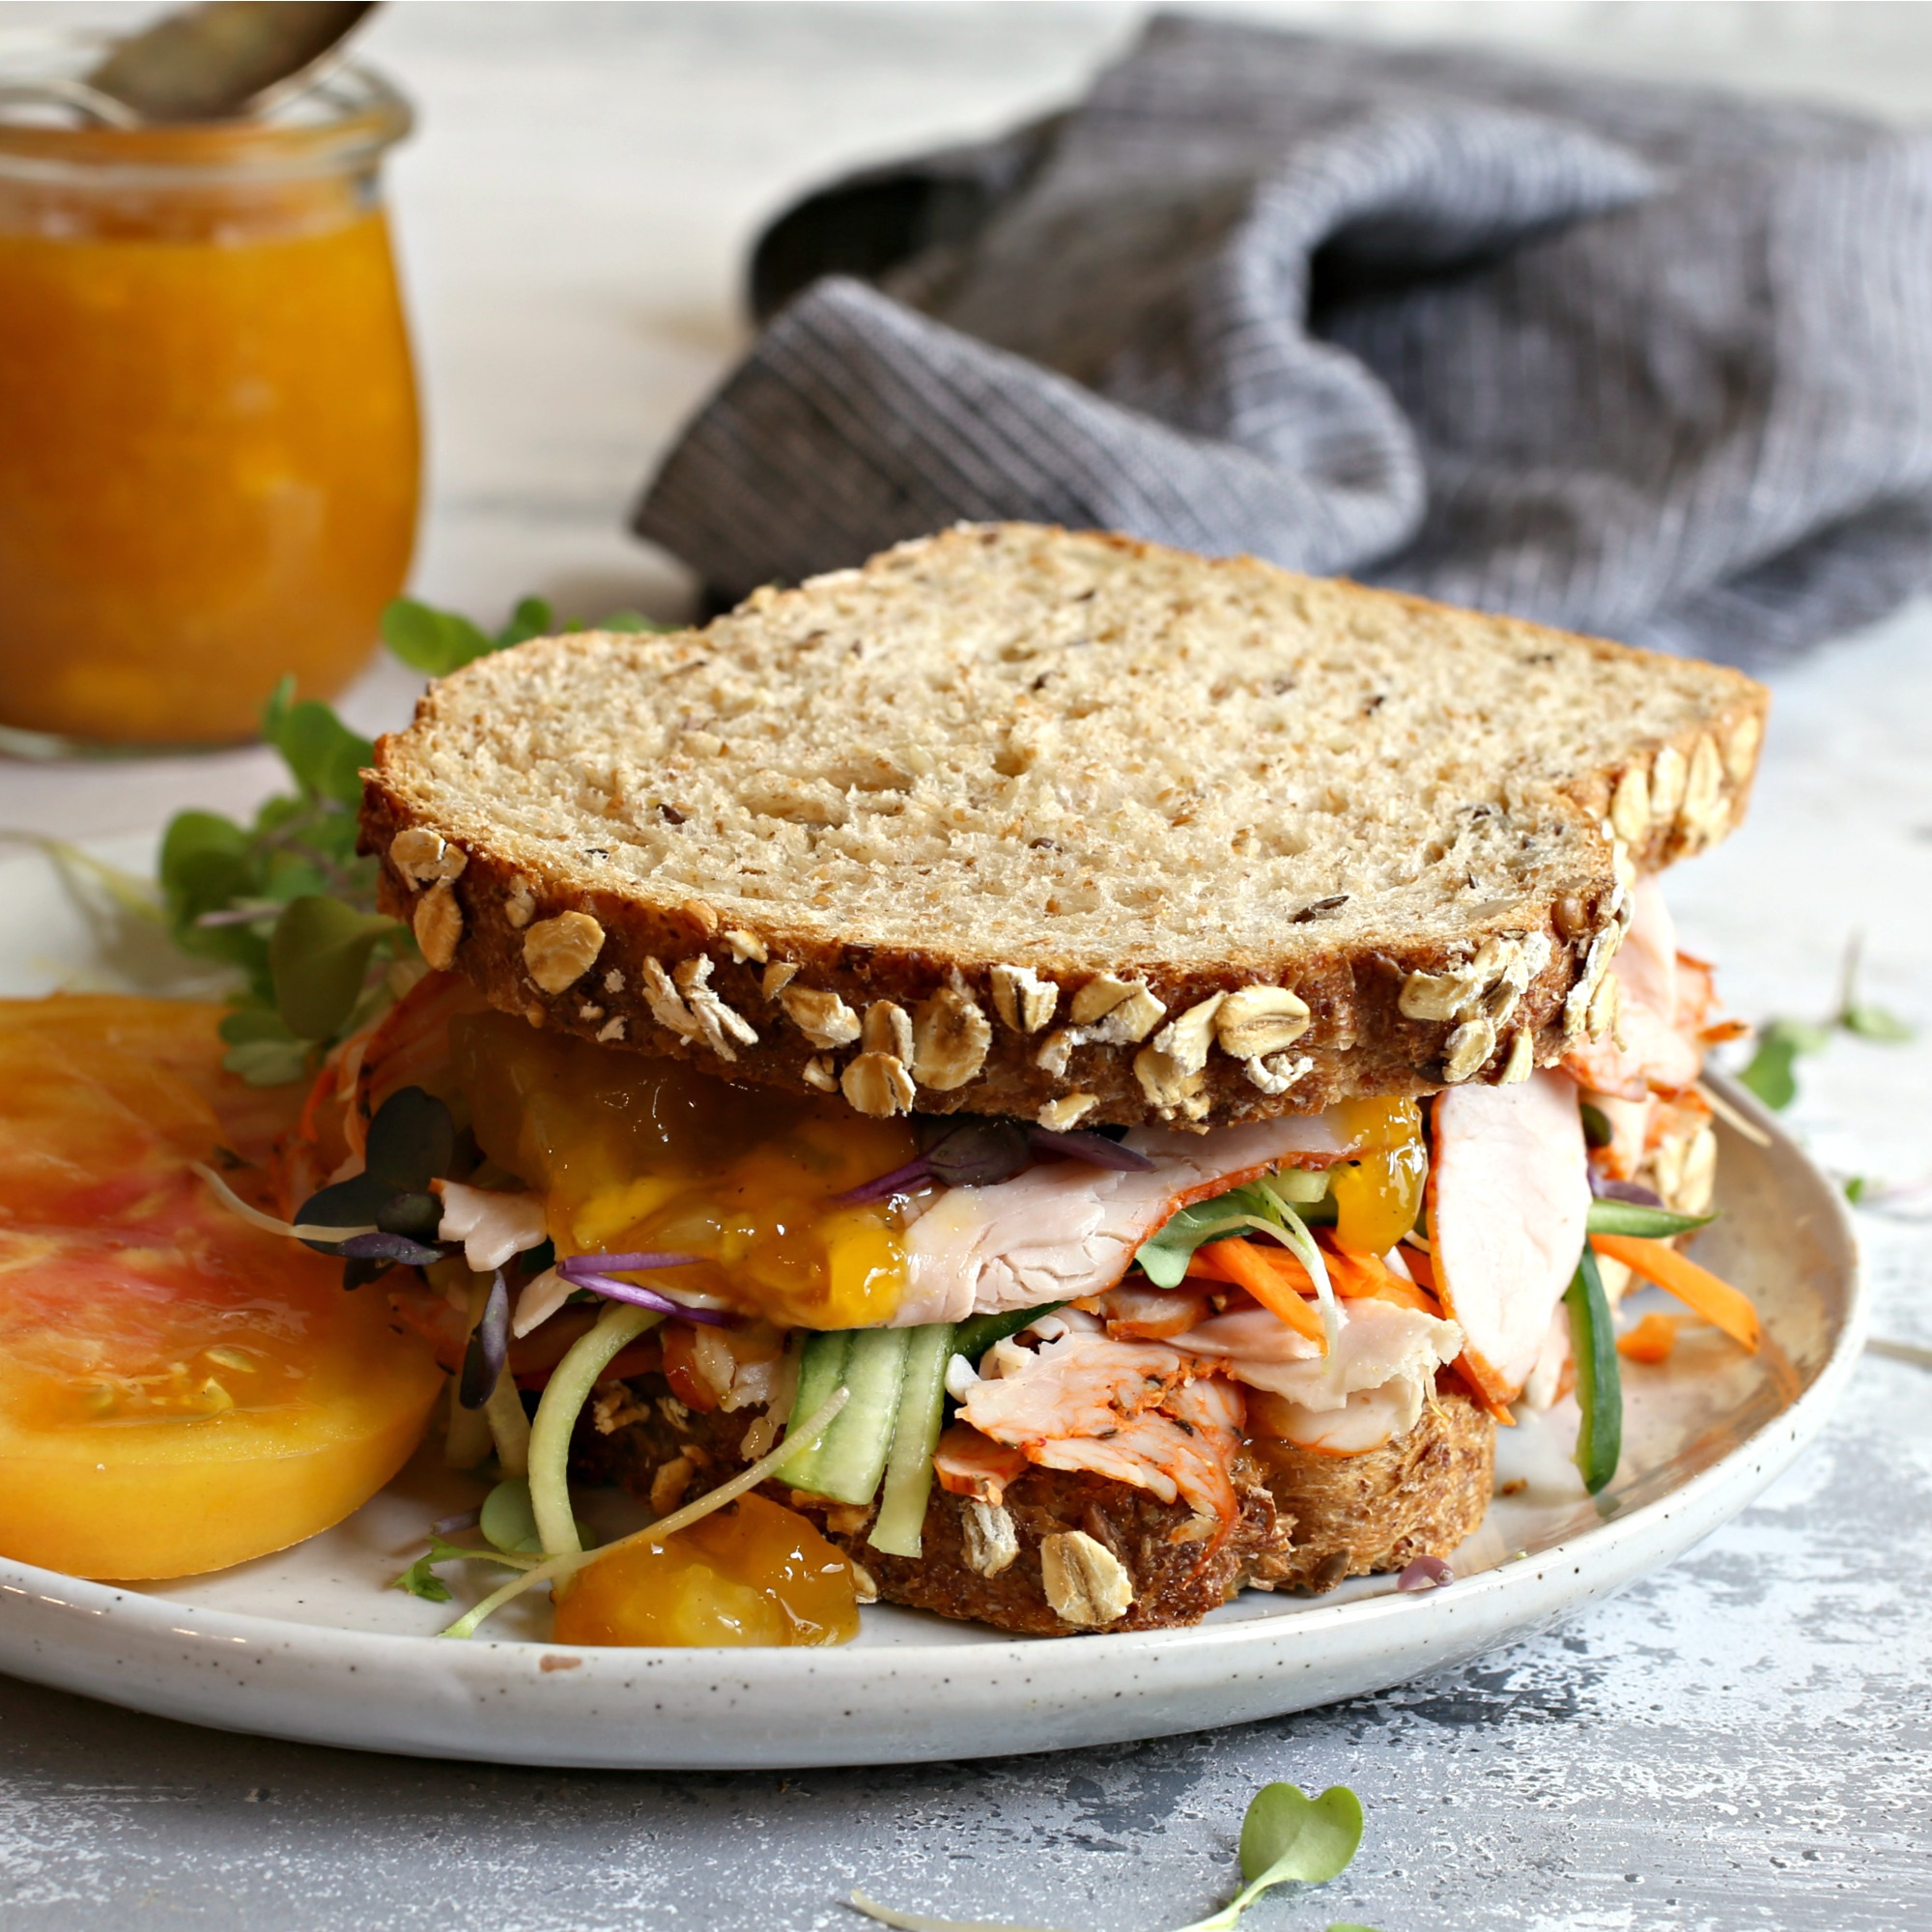 Recipe for a thick turkey and vegetable sandwich, topped with a sauce of mango, honey, lemon and spices.